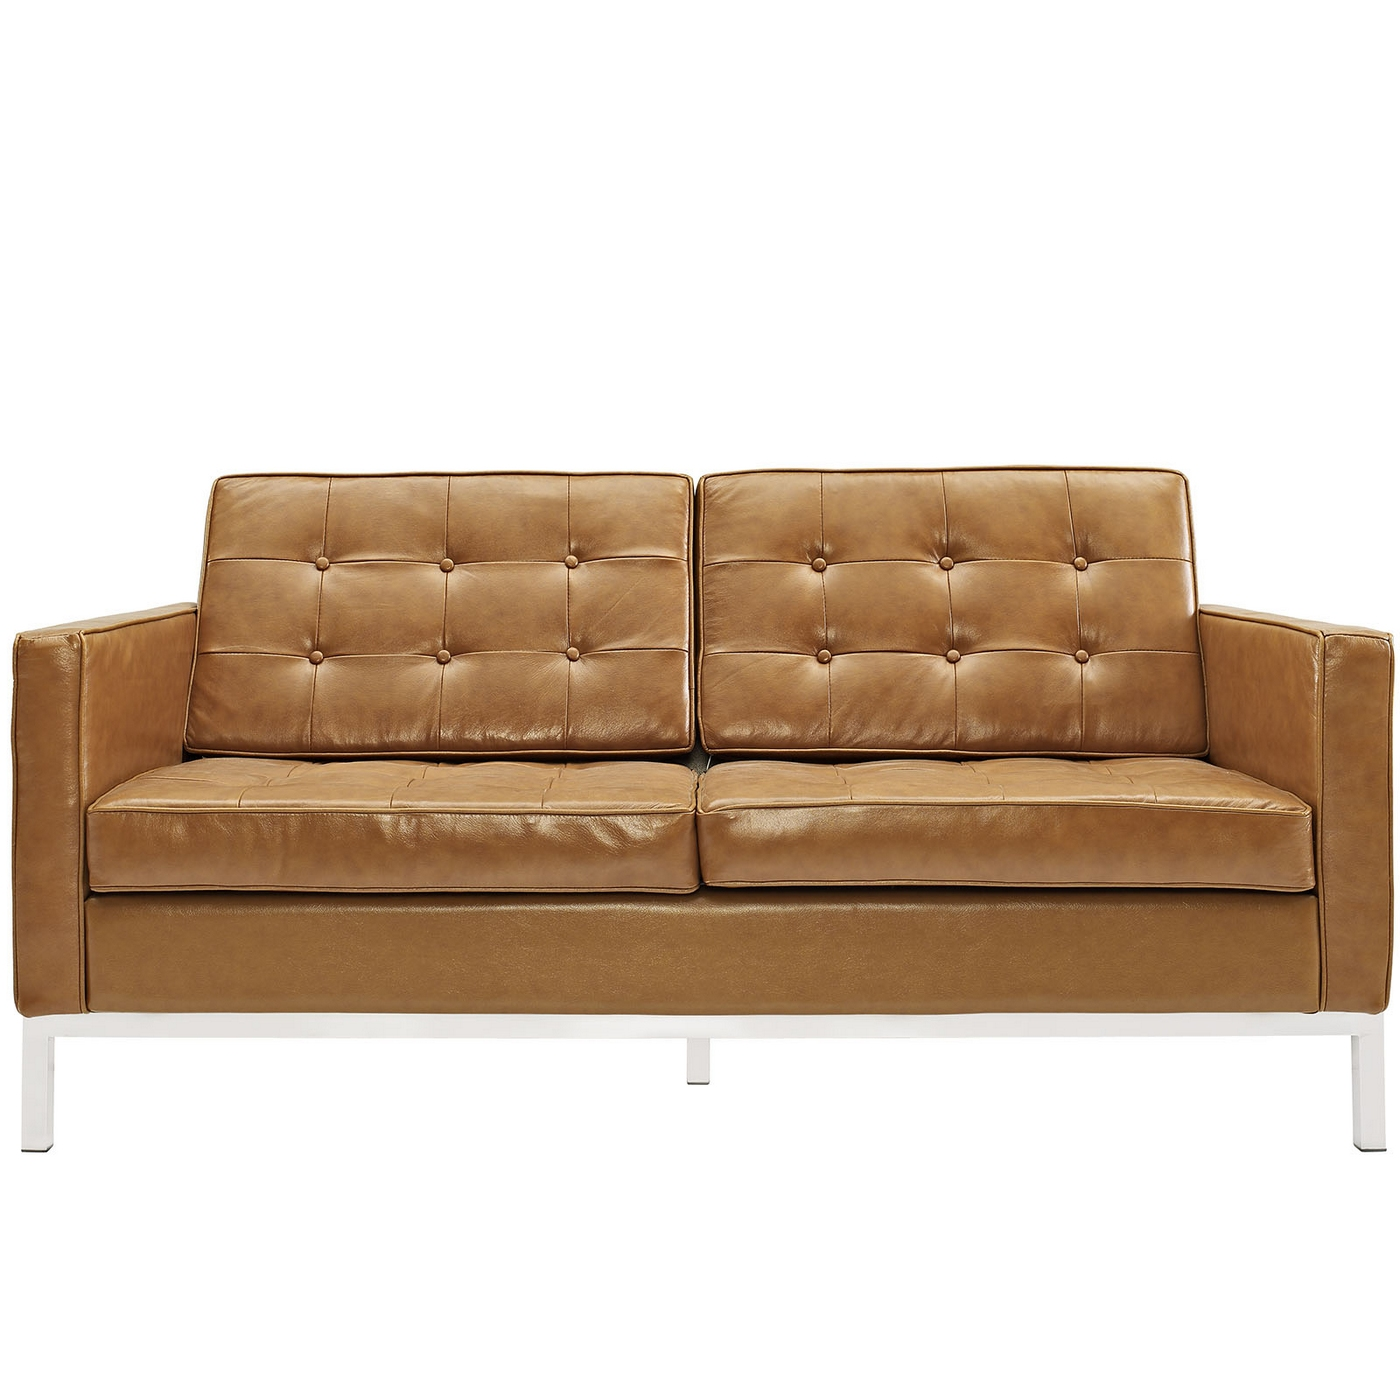 Loft Modern Button Tufted Leather Loveseat With Steel Frame Tan